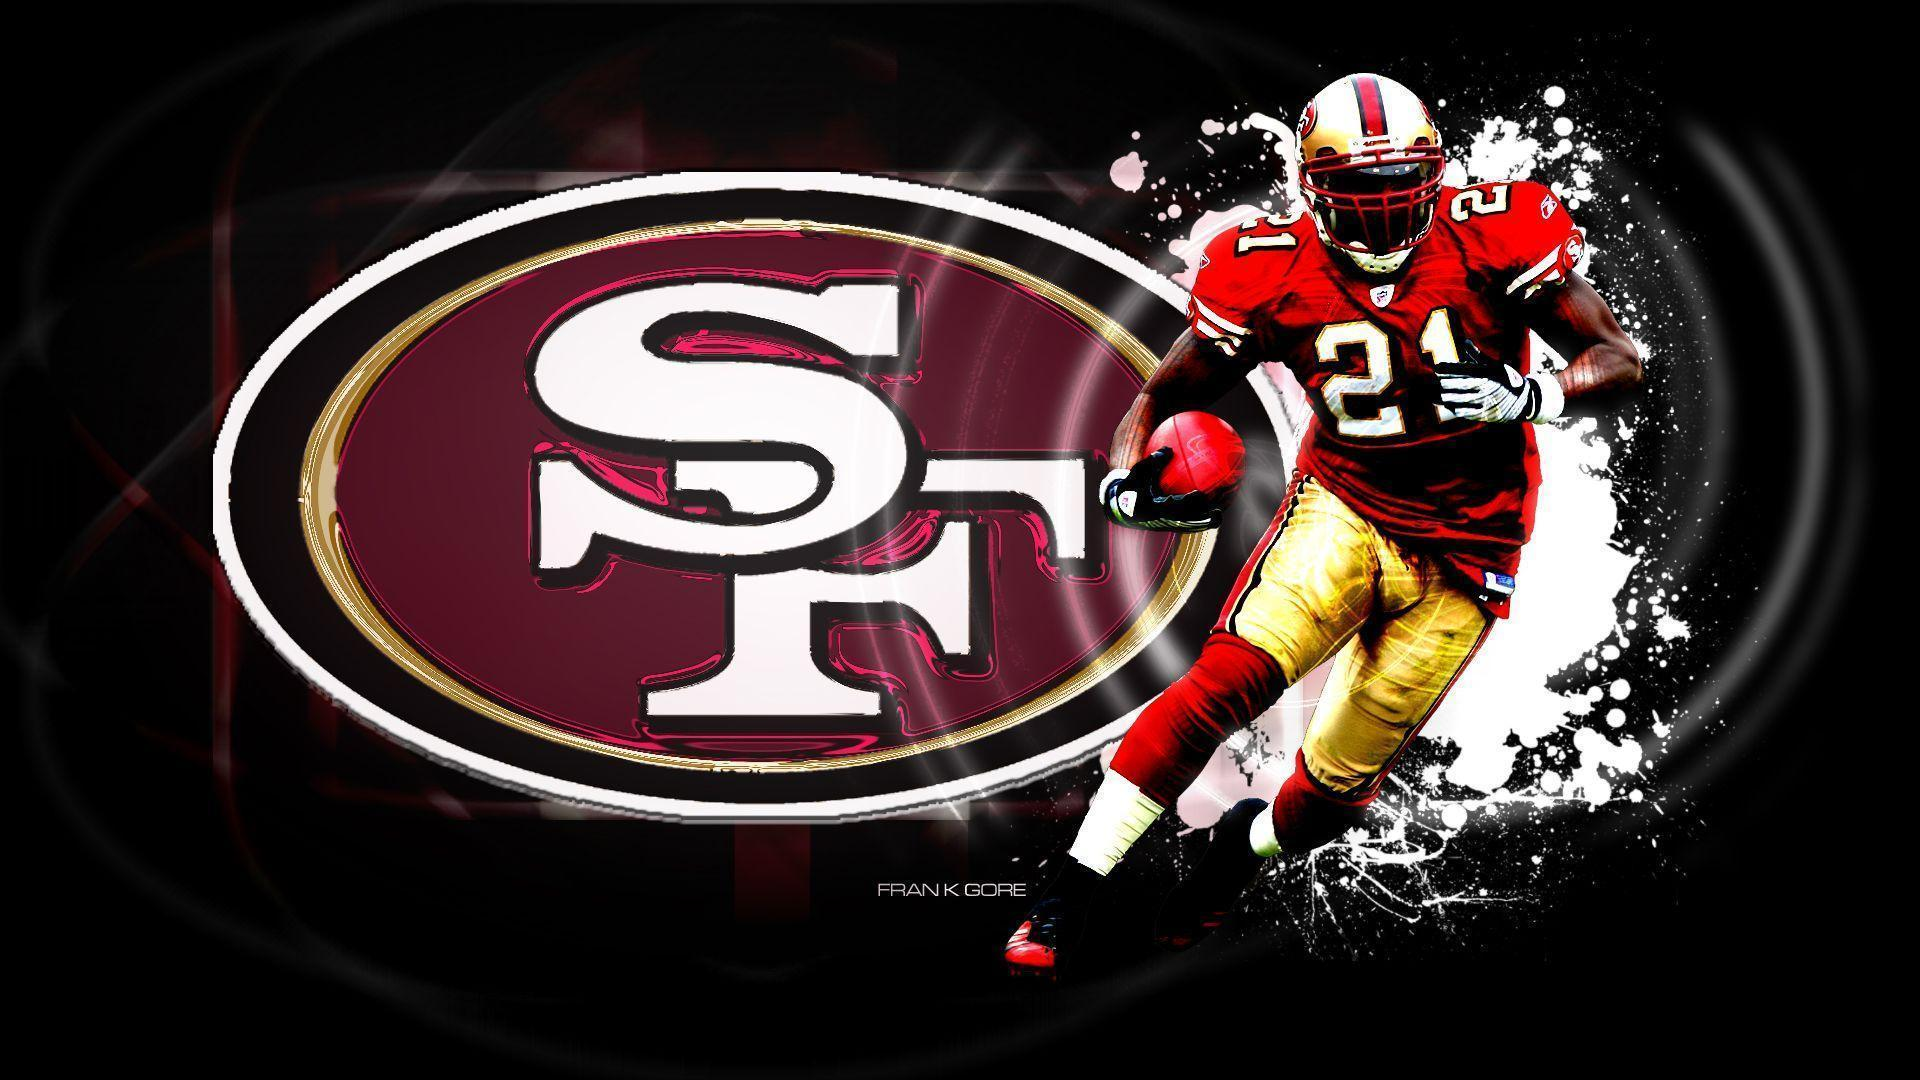 NF:592 - 49ers Wallpaper, Superb 49ers HD Wallpapers - LL.GL